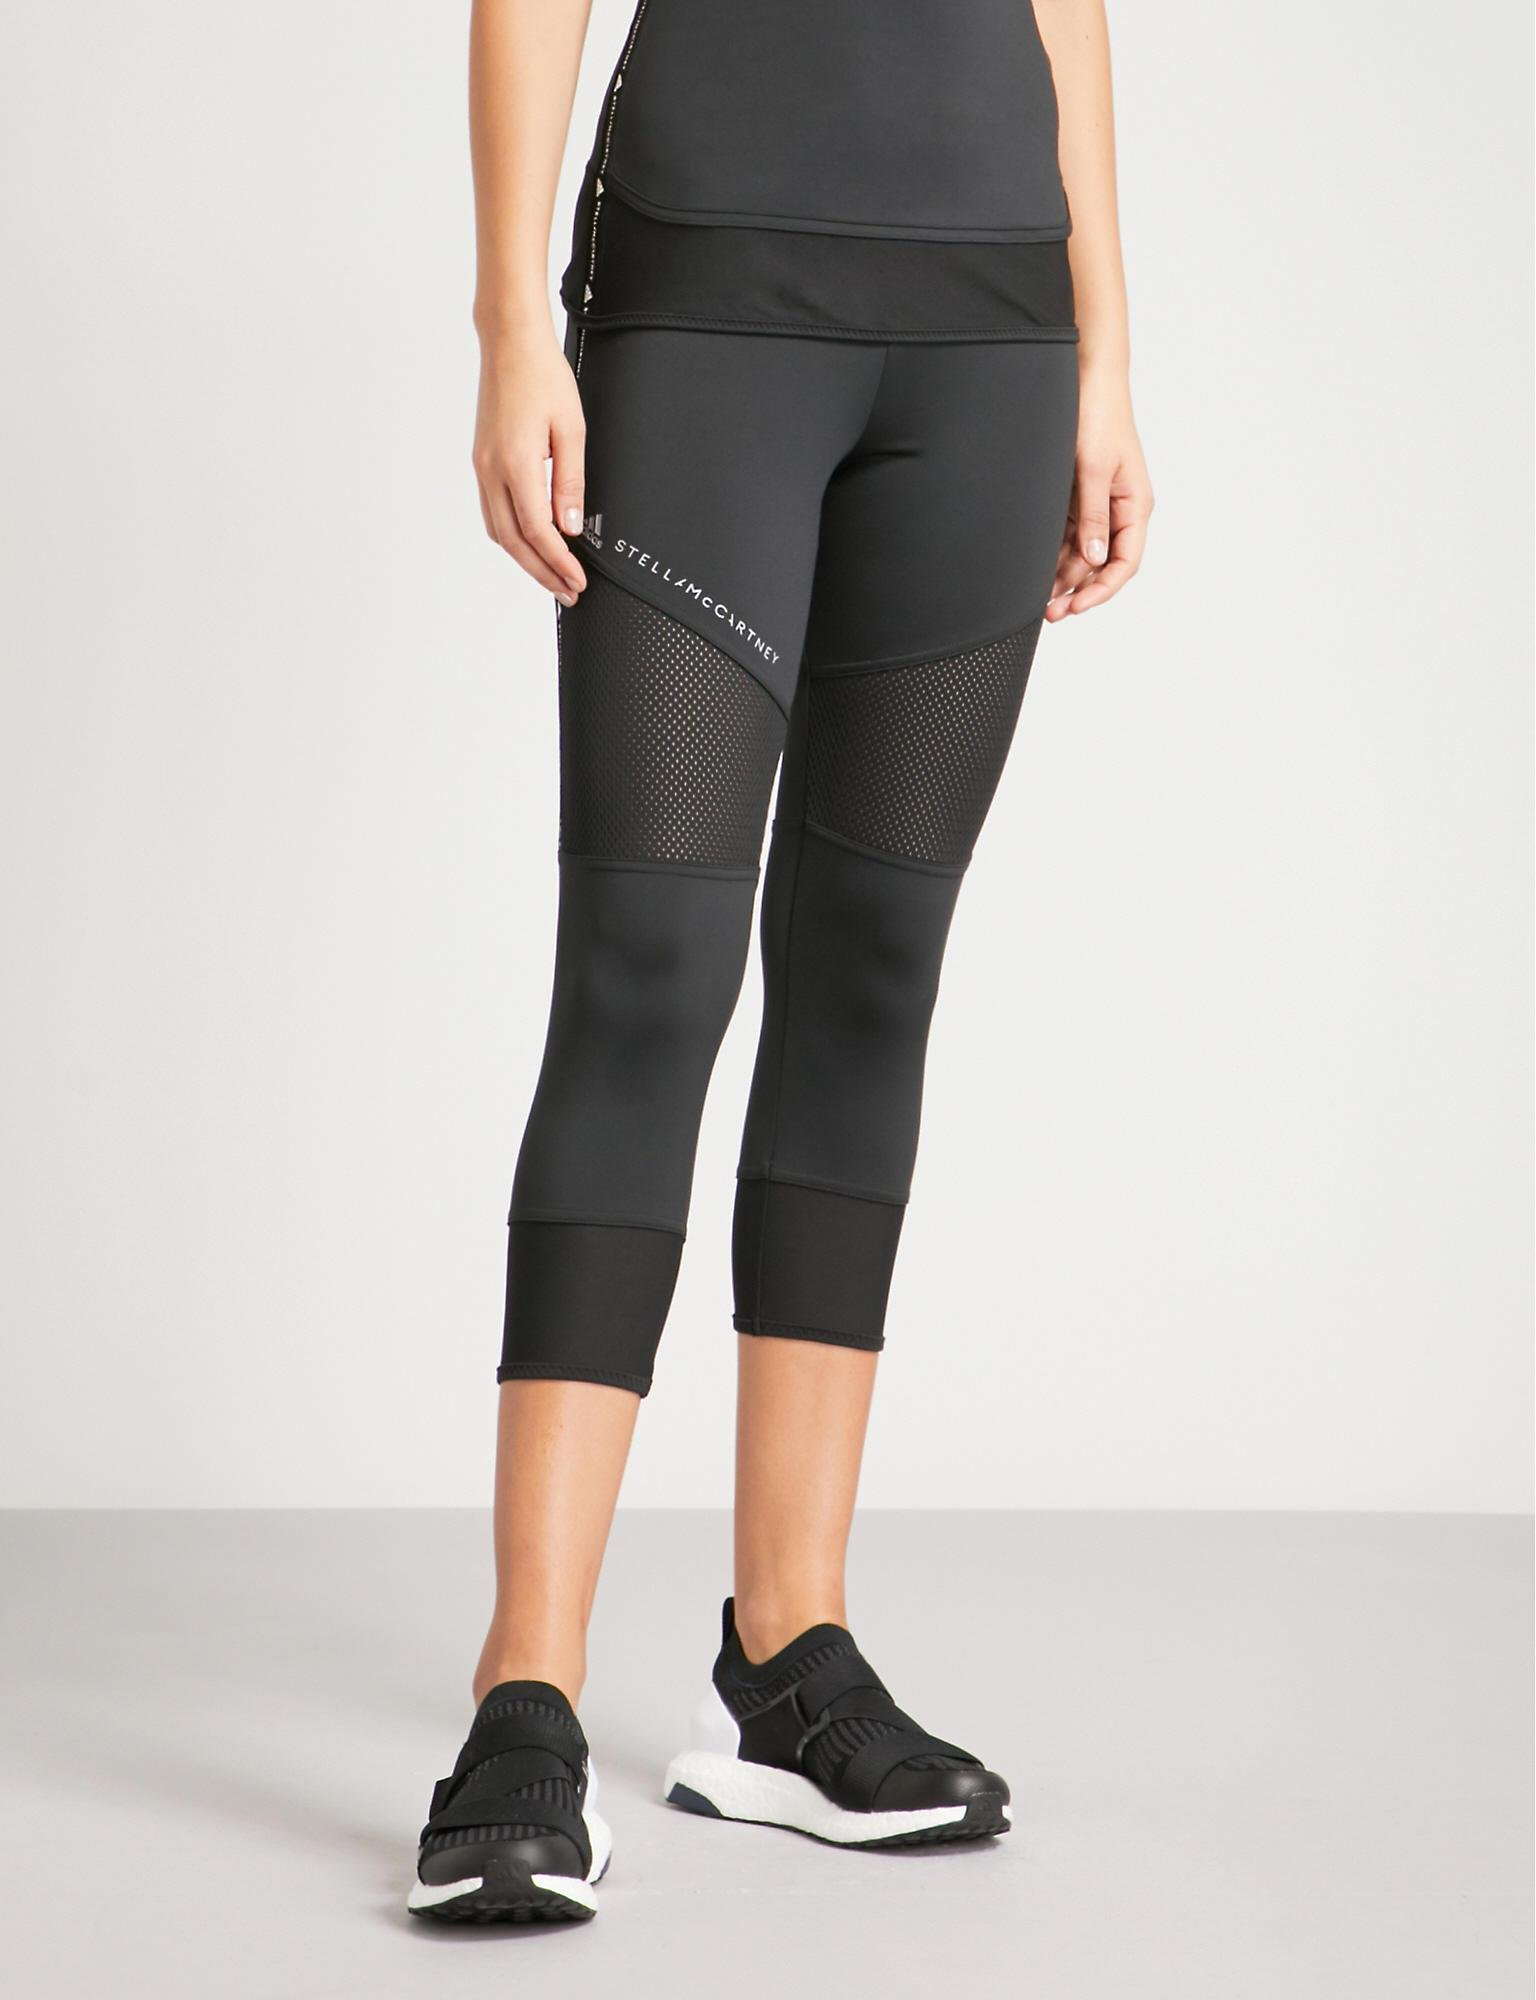 50752447fd898 Tap to visit site. Adidas By Stella McCartney - Womens Black Performance  Essentials Cropped Jersey Leggings ...